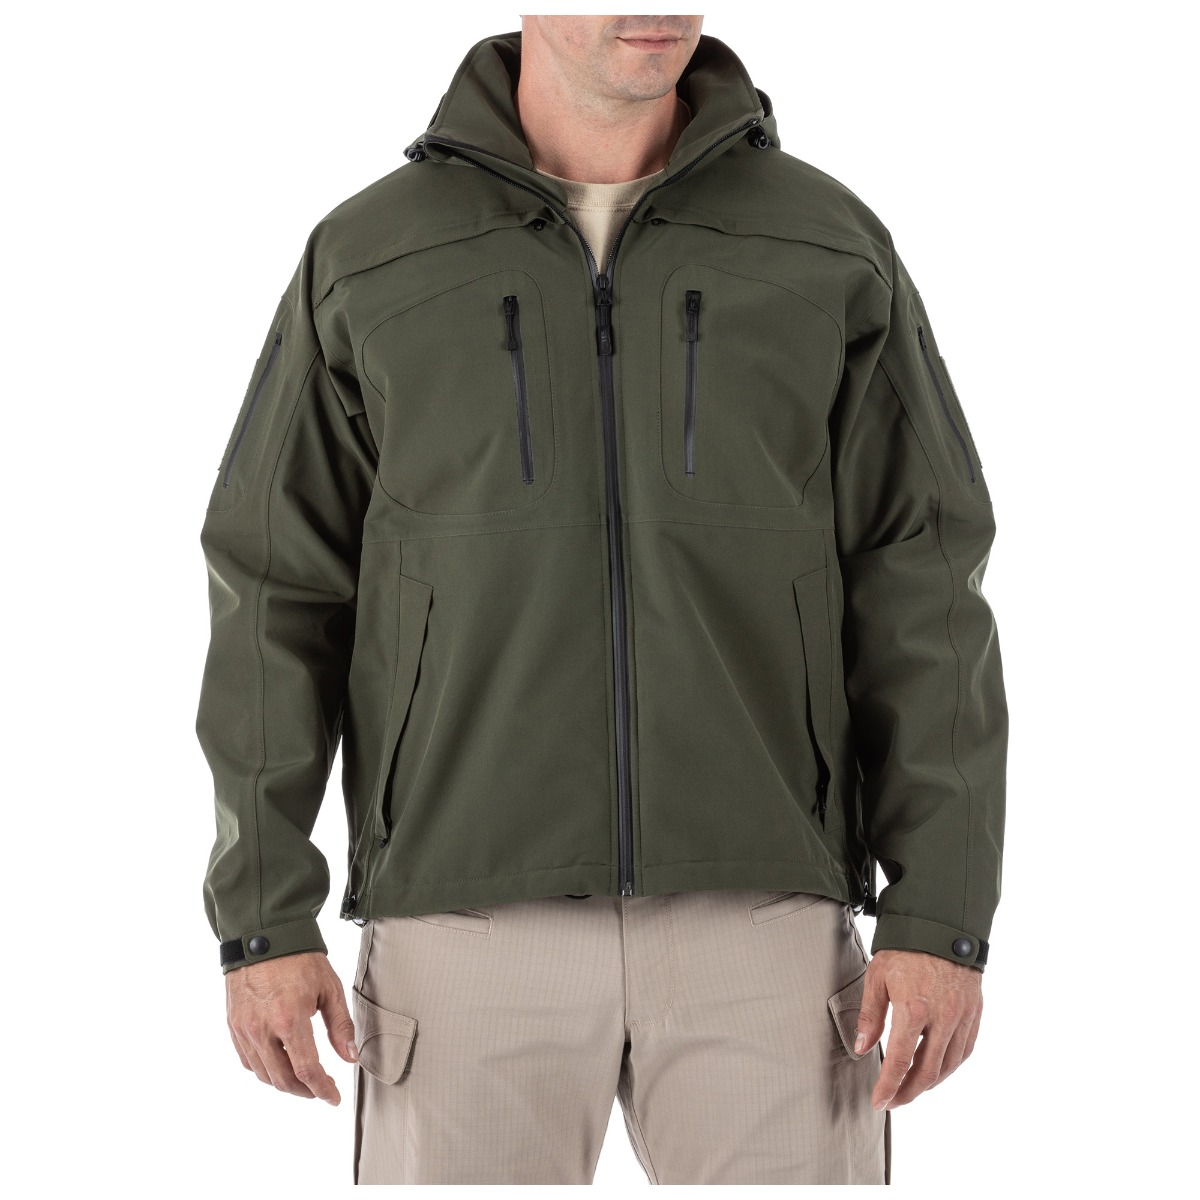 5.11 Tactical Men's Sabre Jacket 2.0™ (Green), Size S (CCW Concealed Carry)